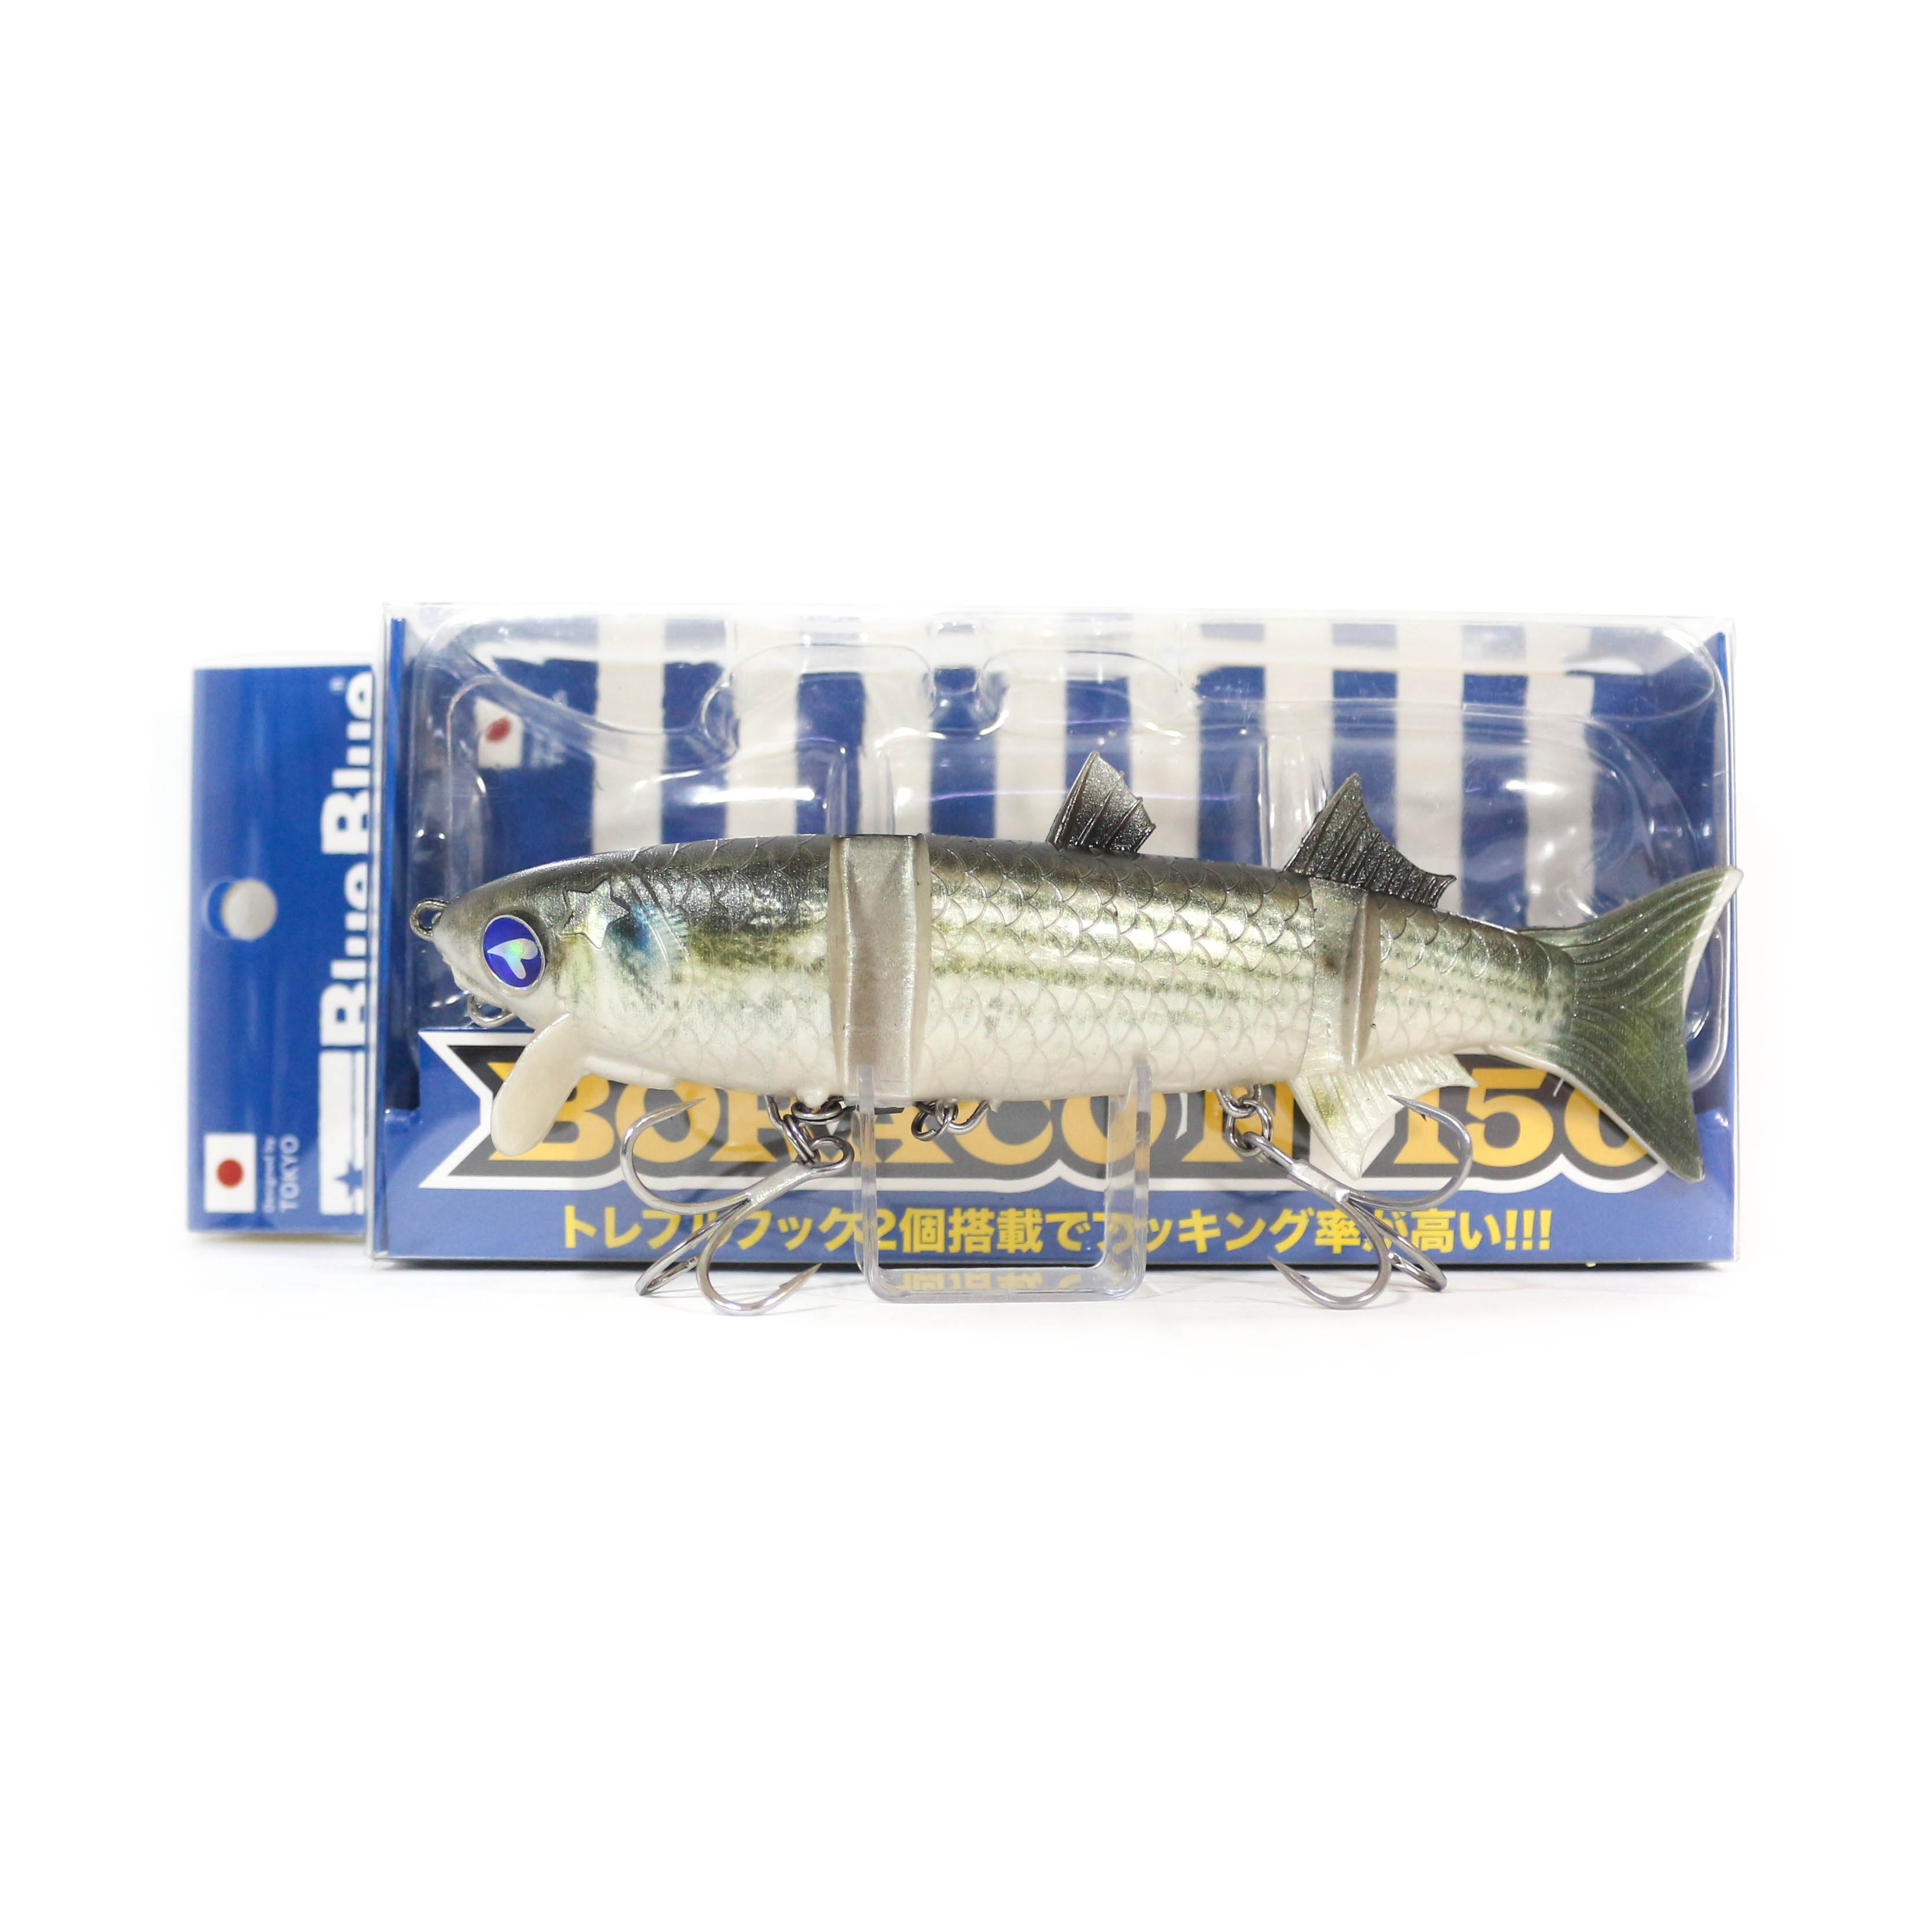 Blue Blue Boracon 150 48 grams Floating Lure 02 (1702)